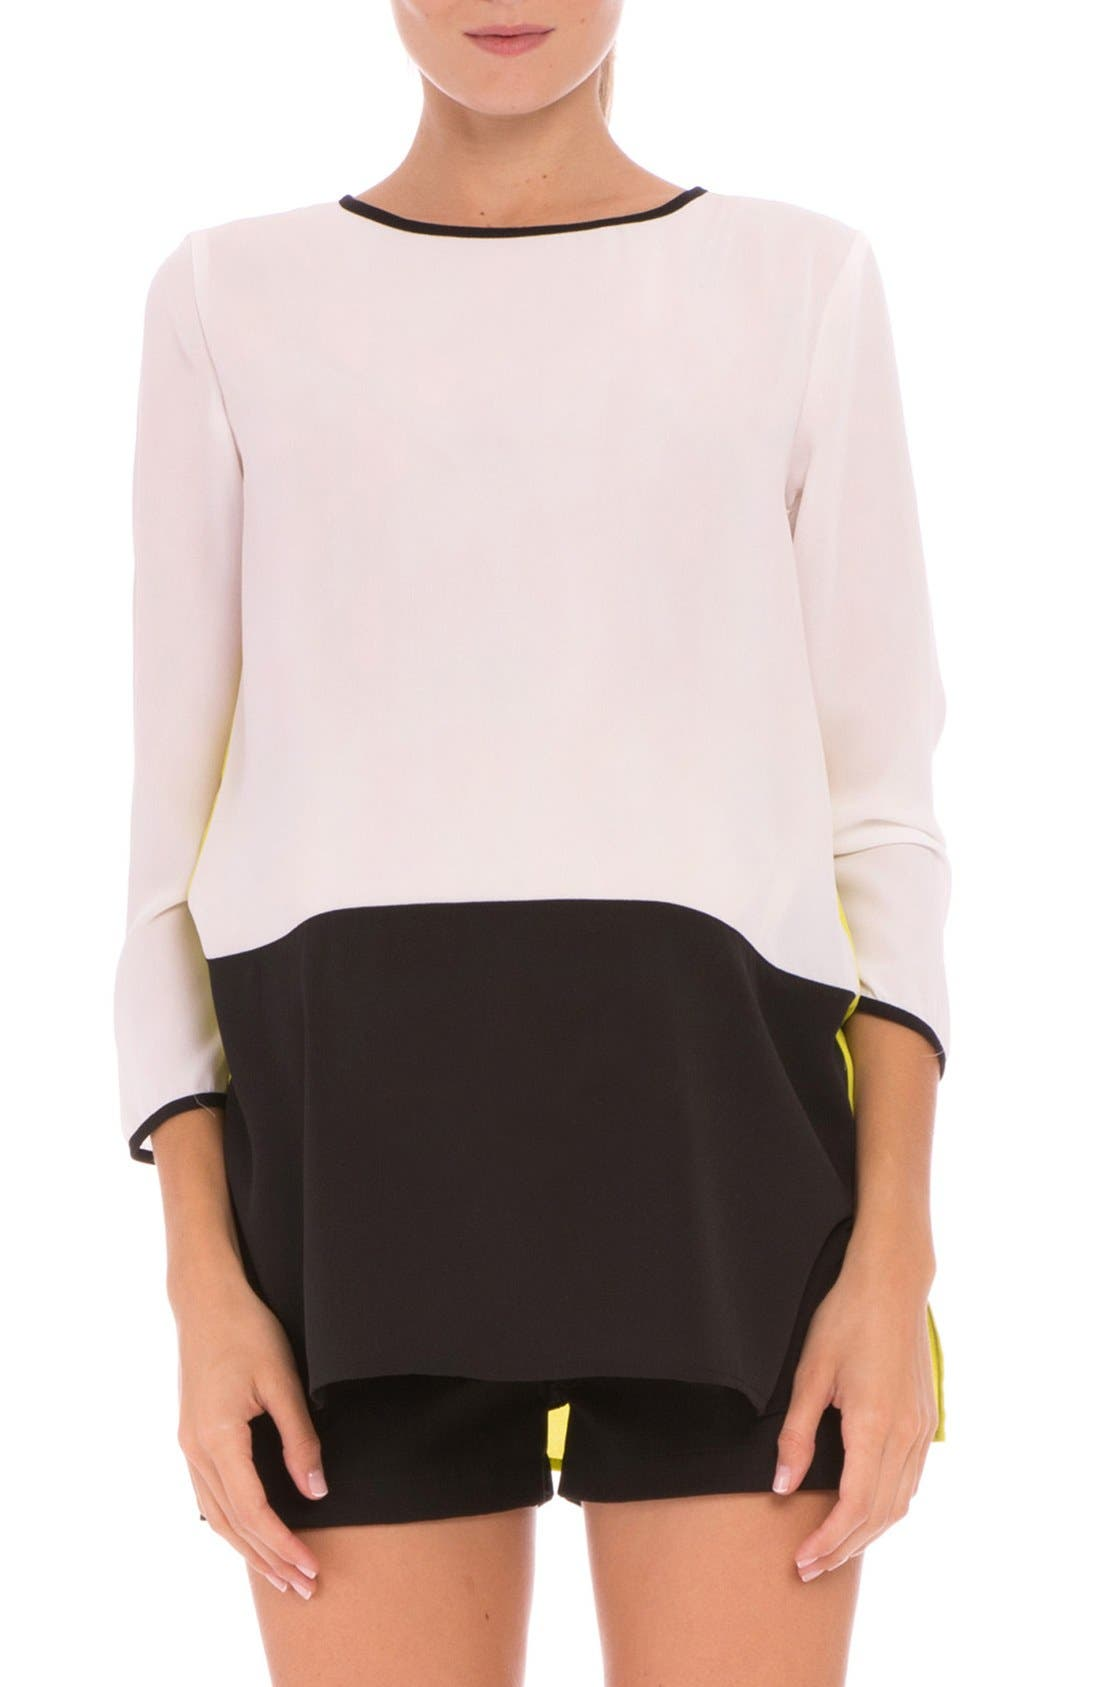 Alternate Image 1 Selected - Olian 'Mia' Colorblock Maternity Top